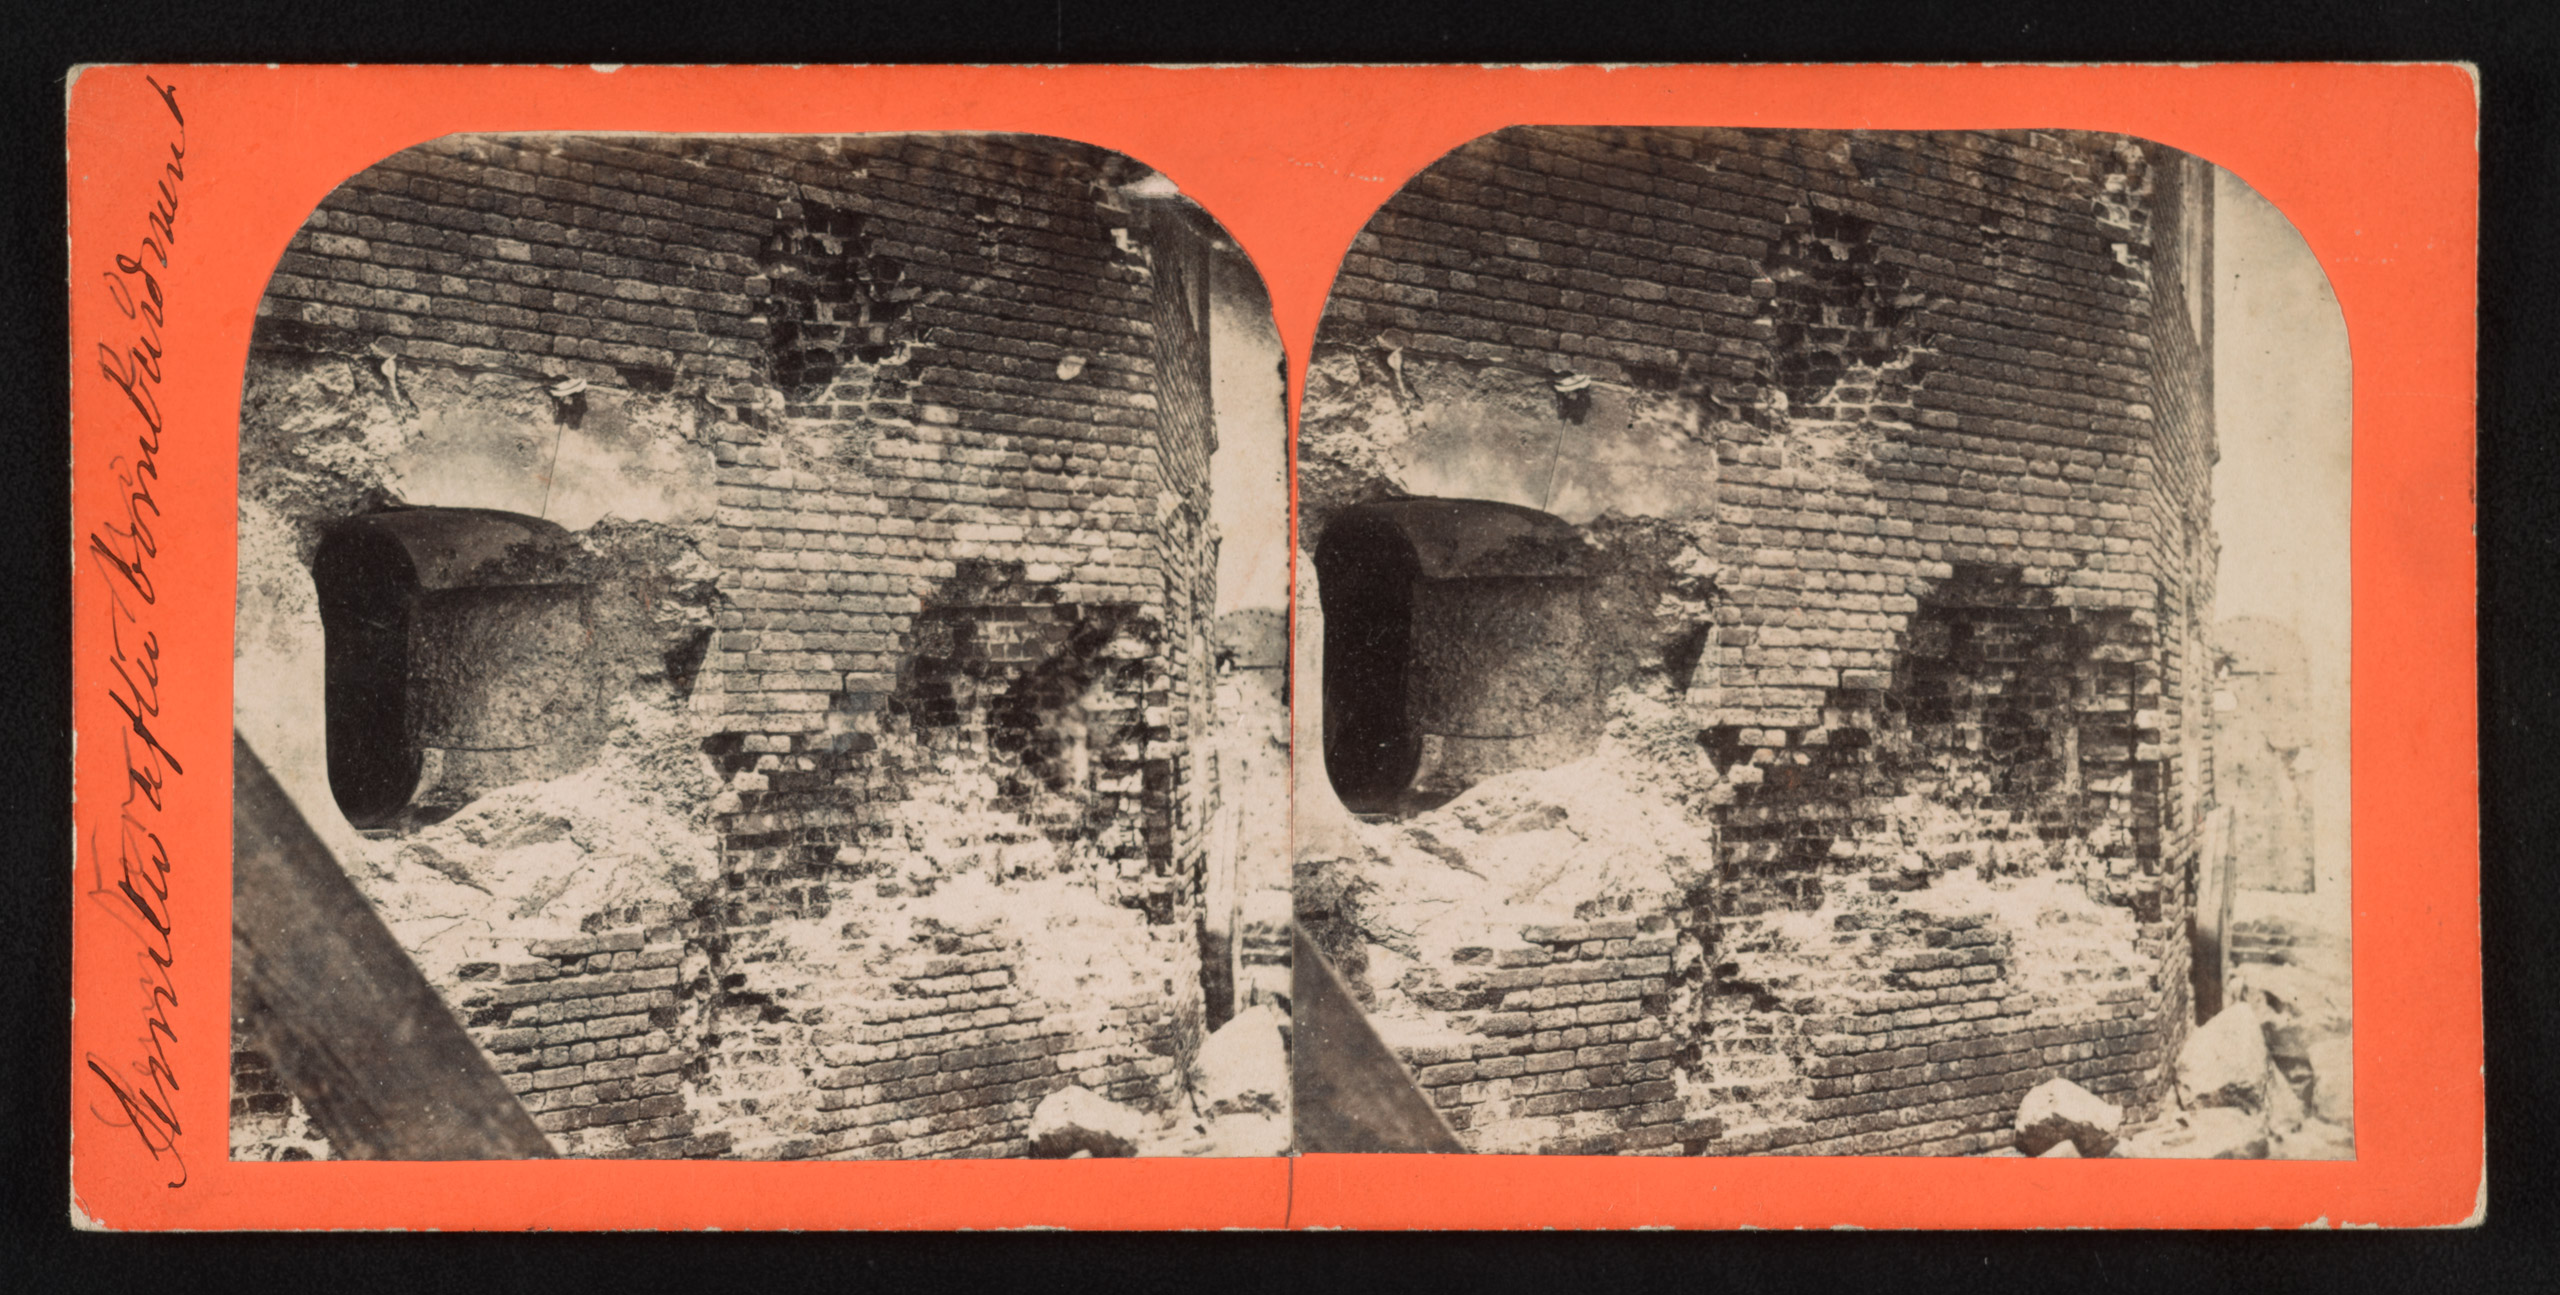 Sumter after bombardment showing damage to the southwest corner of the fort, including an embrasure at left. Stereograph from The Robin G. Stanford Collection.